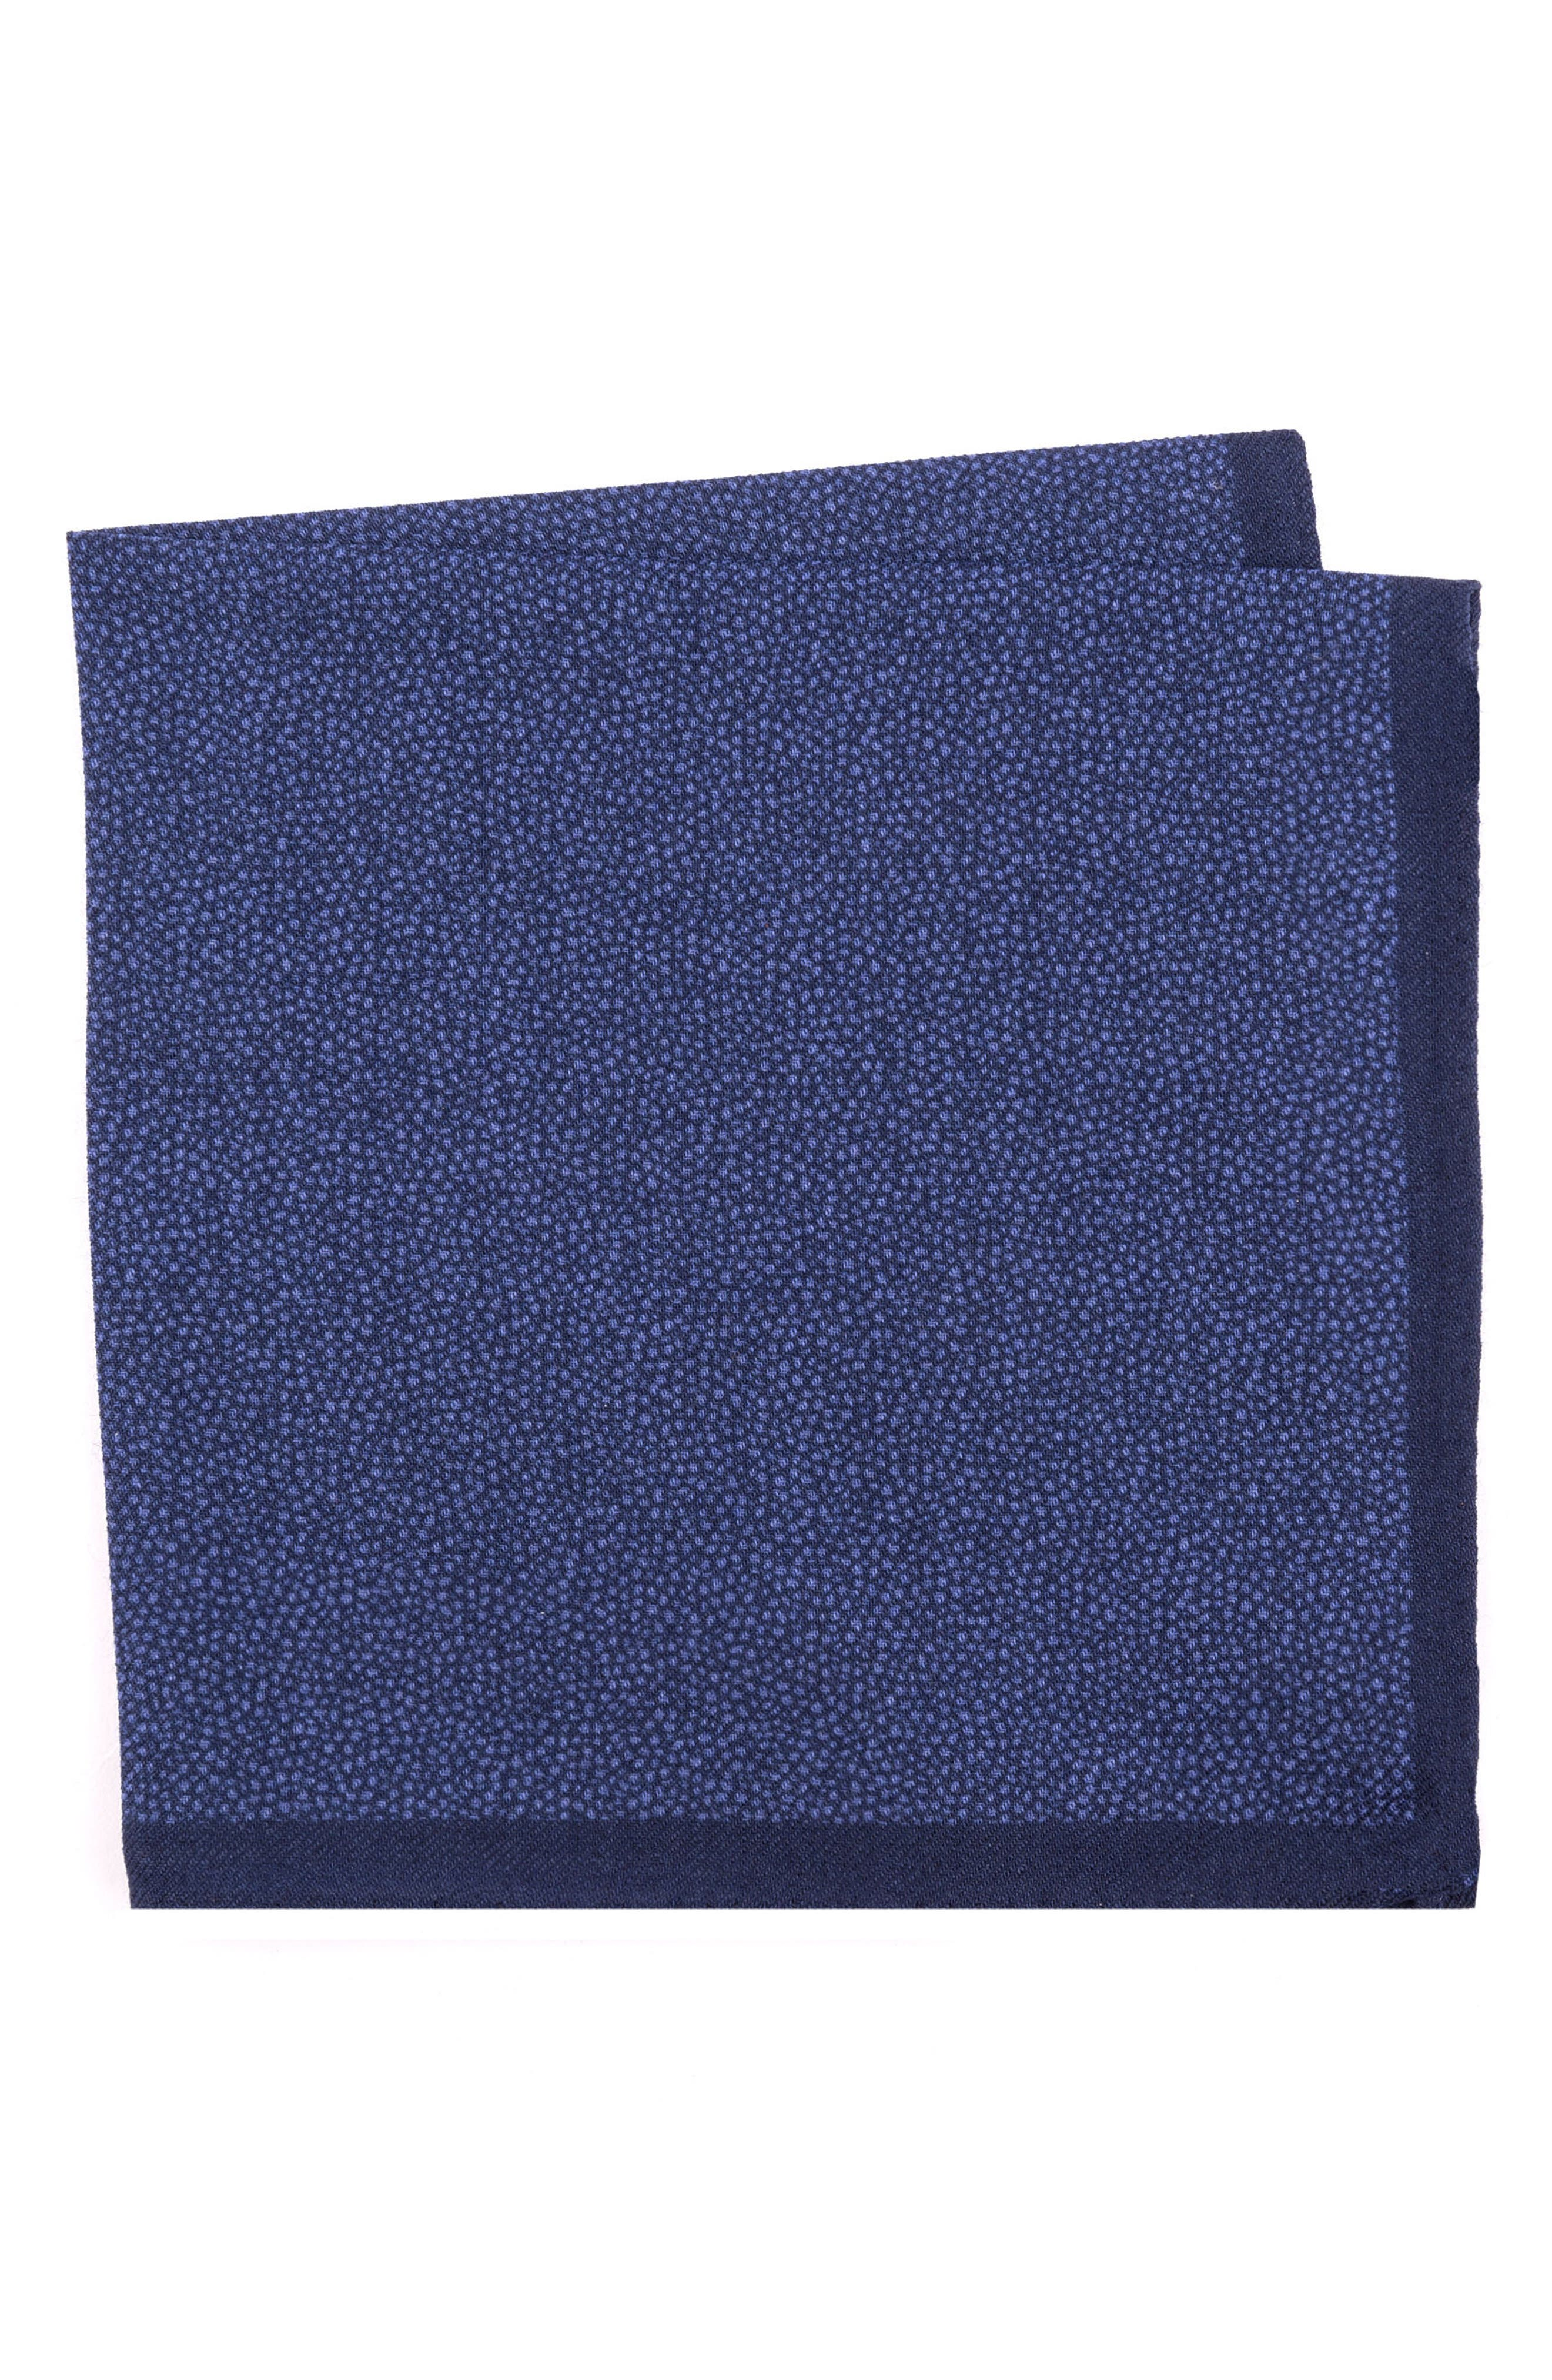 Alternate Image 1 Selected - Ted Baker London Dot Wool Pocket Square